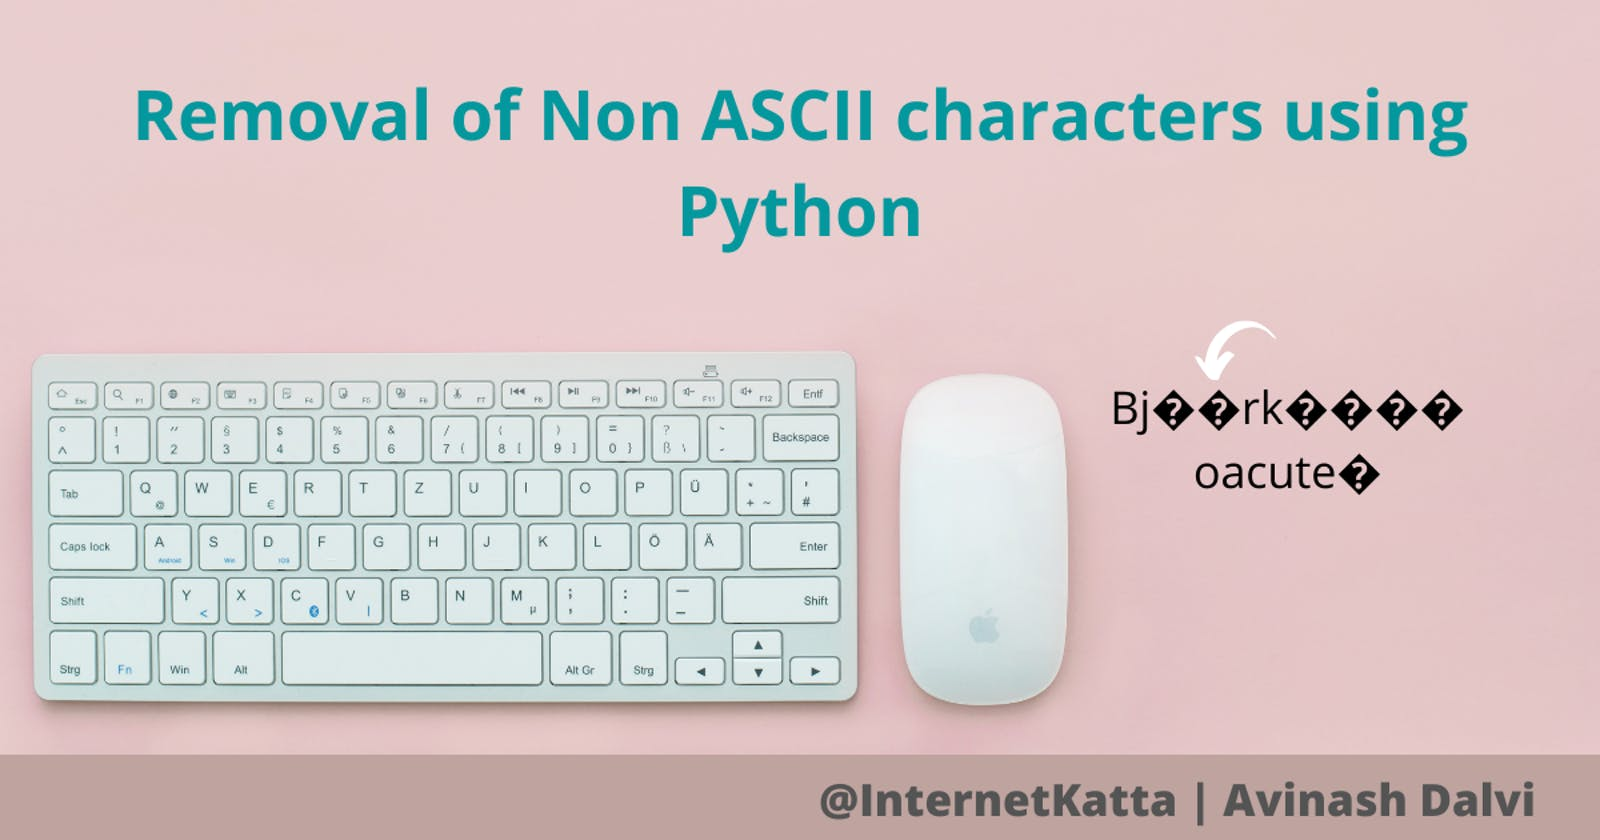 Removal of Non ASCII characters using Python